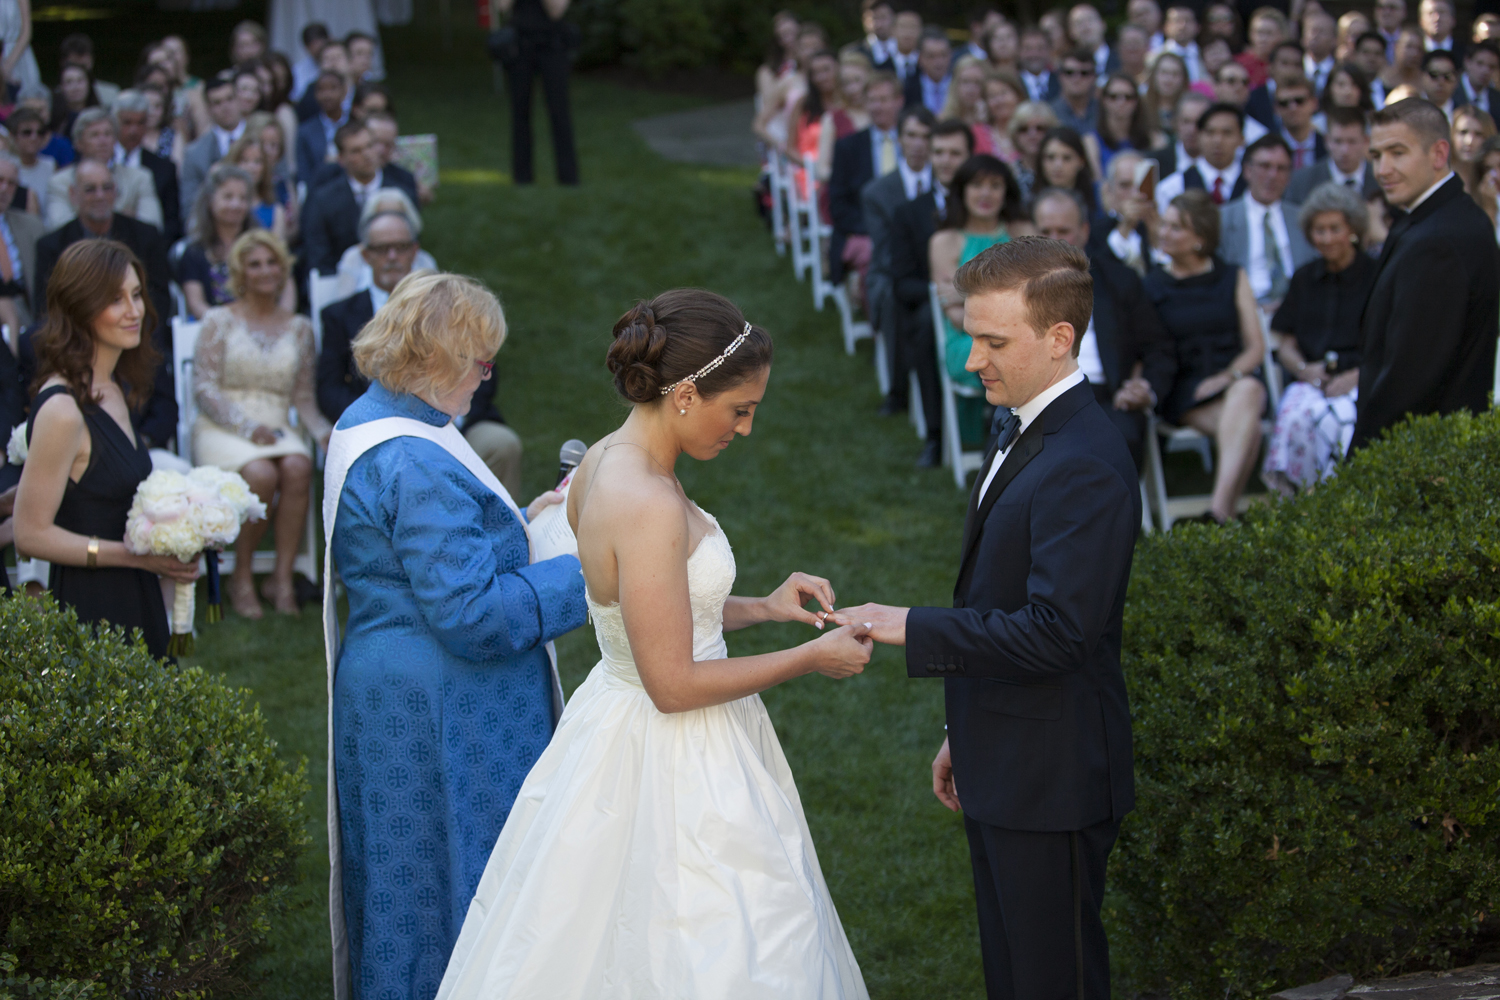 bride and groom exchange rings during their backyard wedding ceremony in Morristown, New Jersey